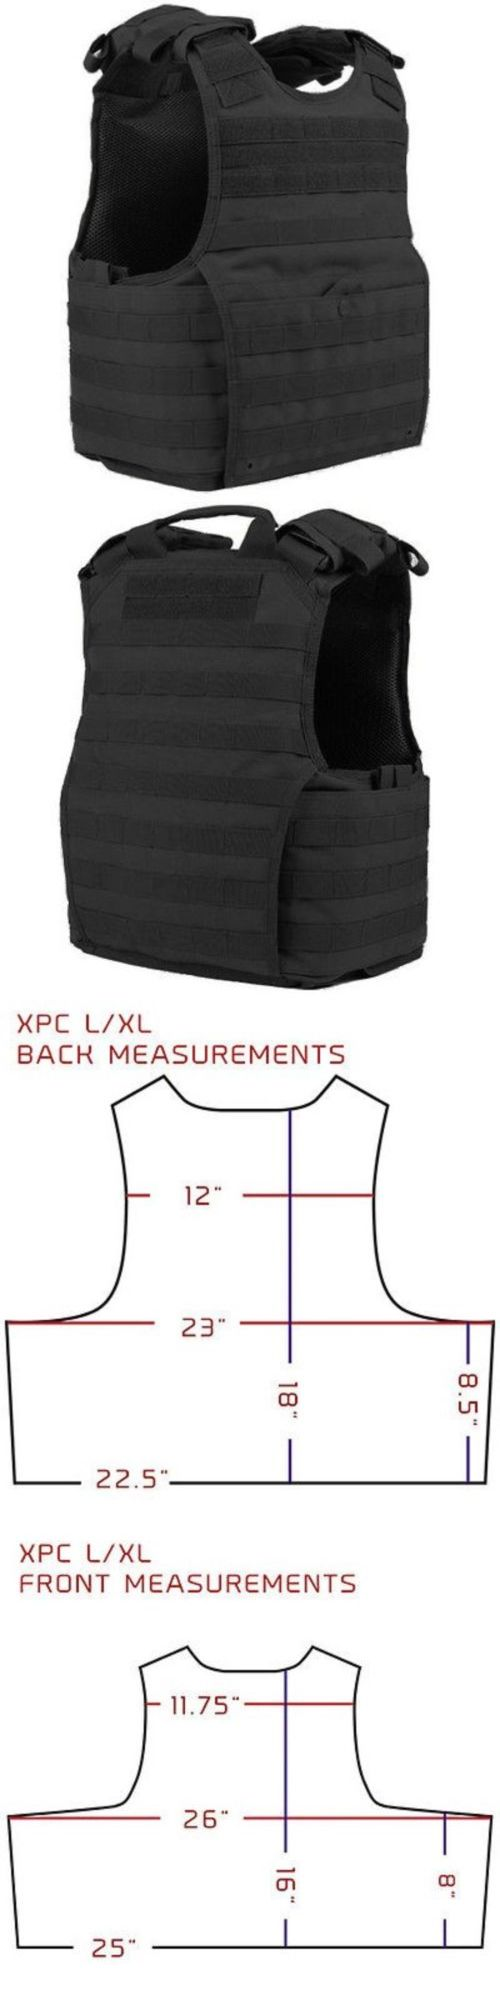 Chest Rigs and Tactical Vests 177891: Condor Xpc Black Exo Spear/Balc Molle Armor Plate Carrier Tactical Vest L/Xl -> BUY IT NOW ONLY: $73.95 on eBay!